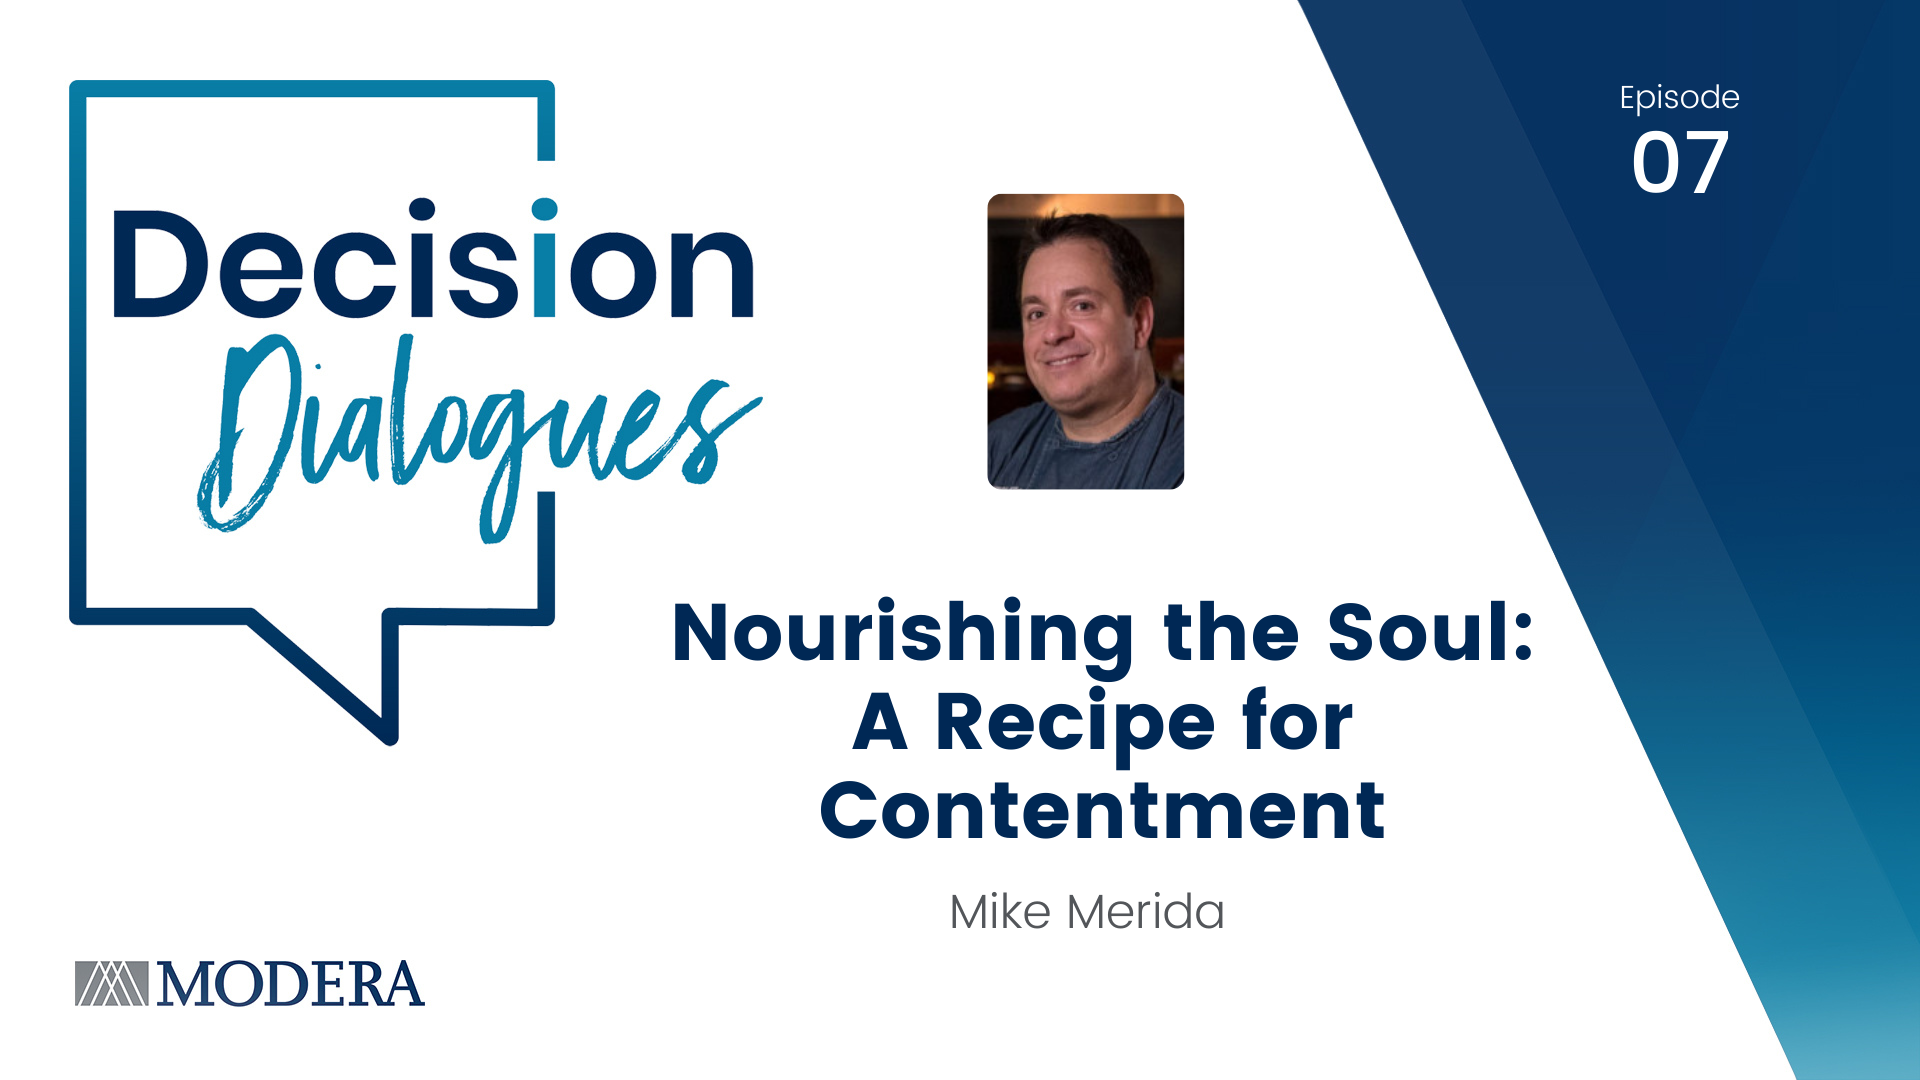 Decision Dialogues Episode 07 - Nourishing the Soul: A Recipe for Contentment - Mike Merida